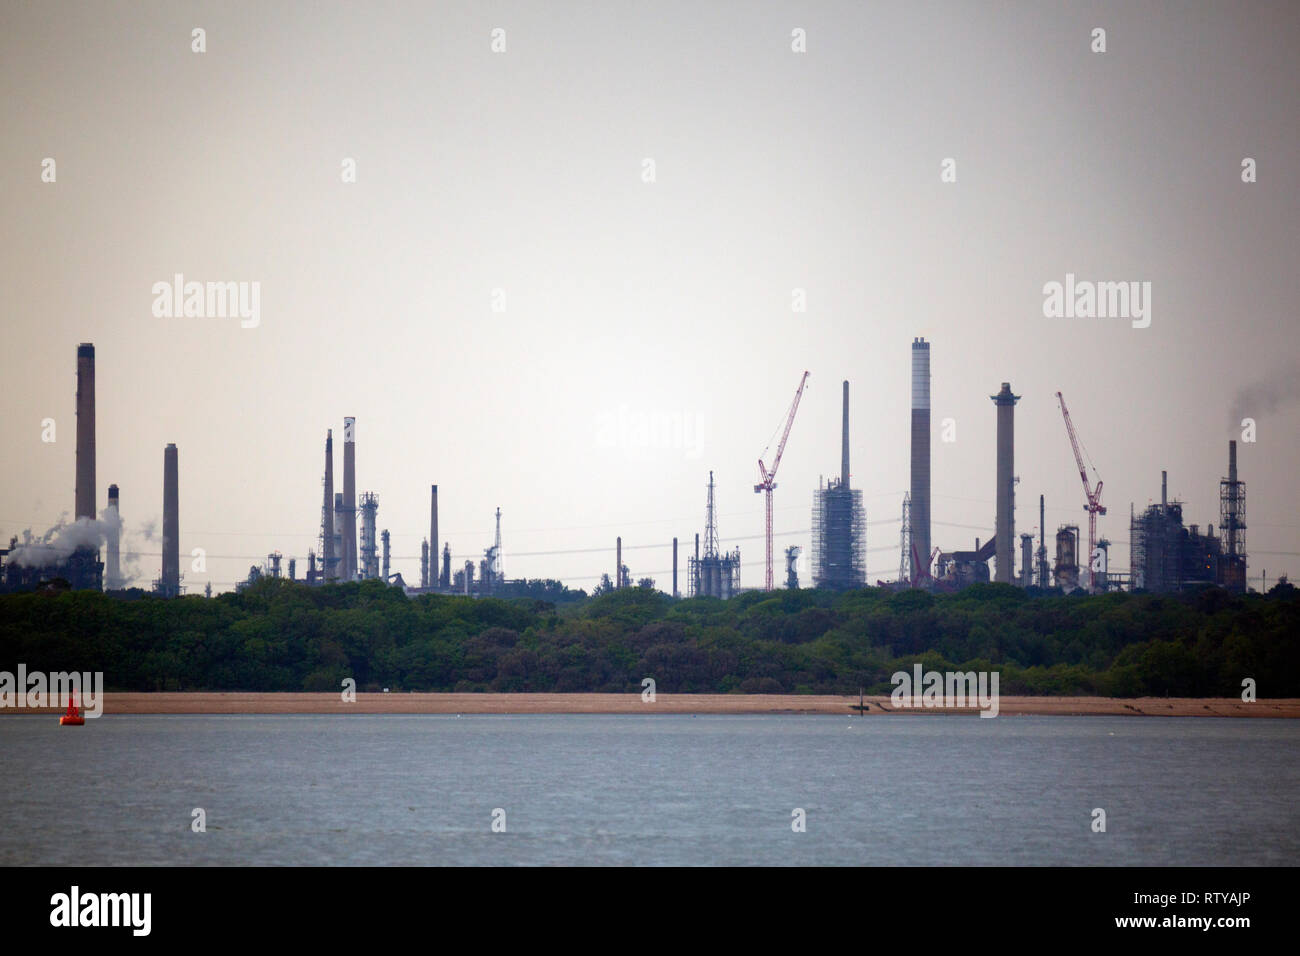 The Solent, Fawley,oil,refinery, cracking,towers,cranes,chimney,chimneys,flames, New Forest,Hampshire, Isle of Wight, England, UK, silhouette, - Stock Image